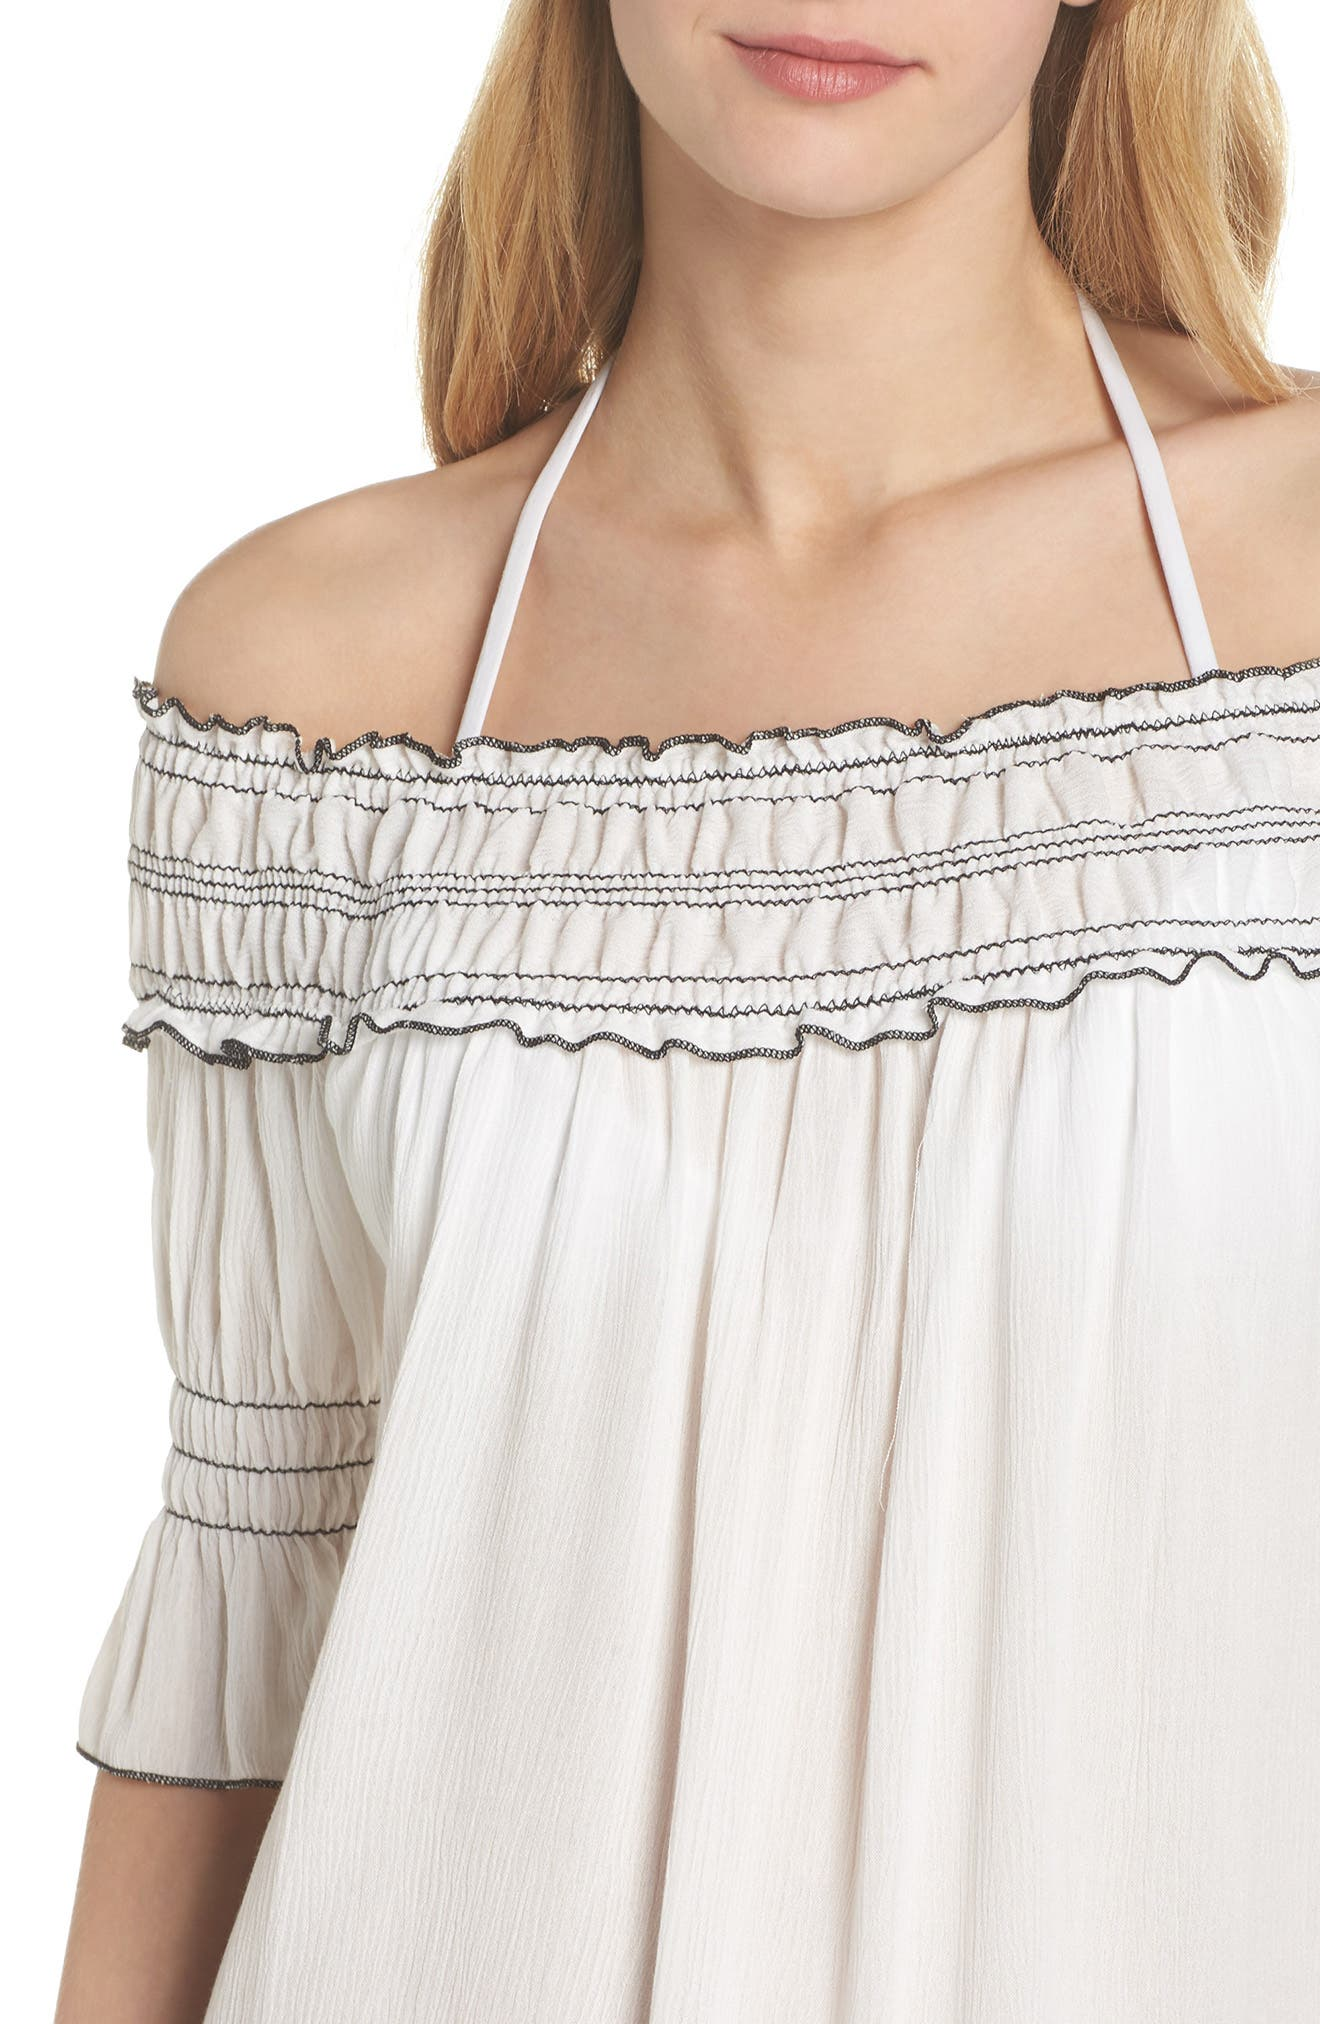 Nightingale Off the Shoulder Cover-Up Dress,                             Alternate thumbnail 4, color,                             White